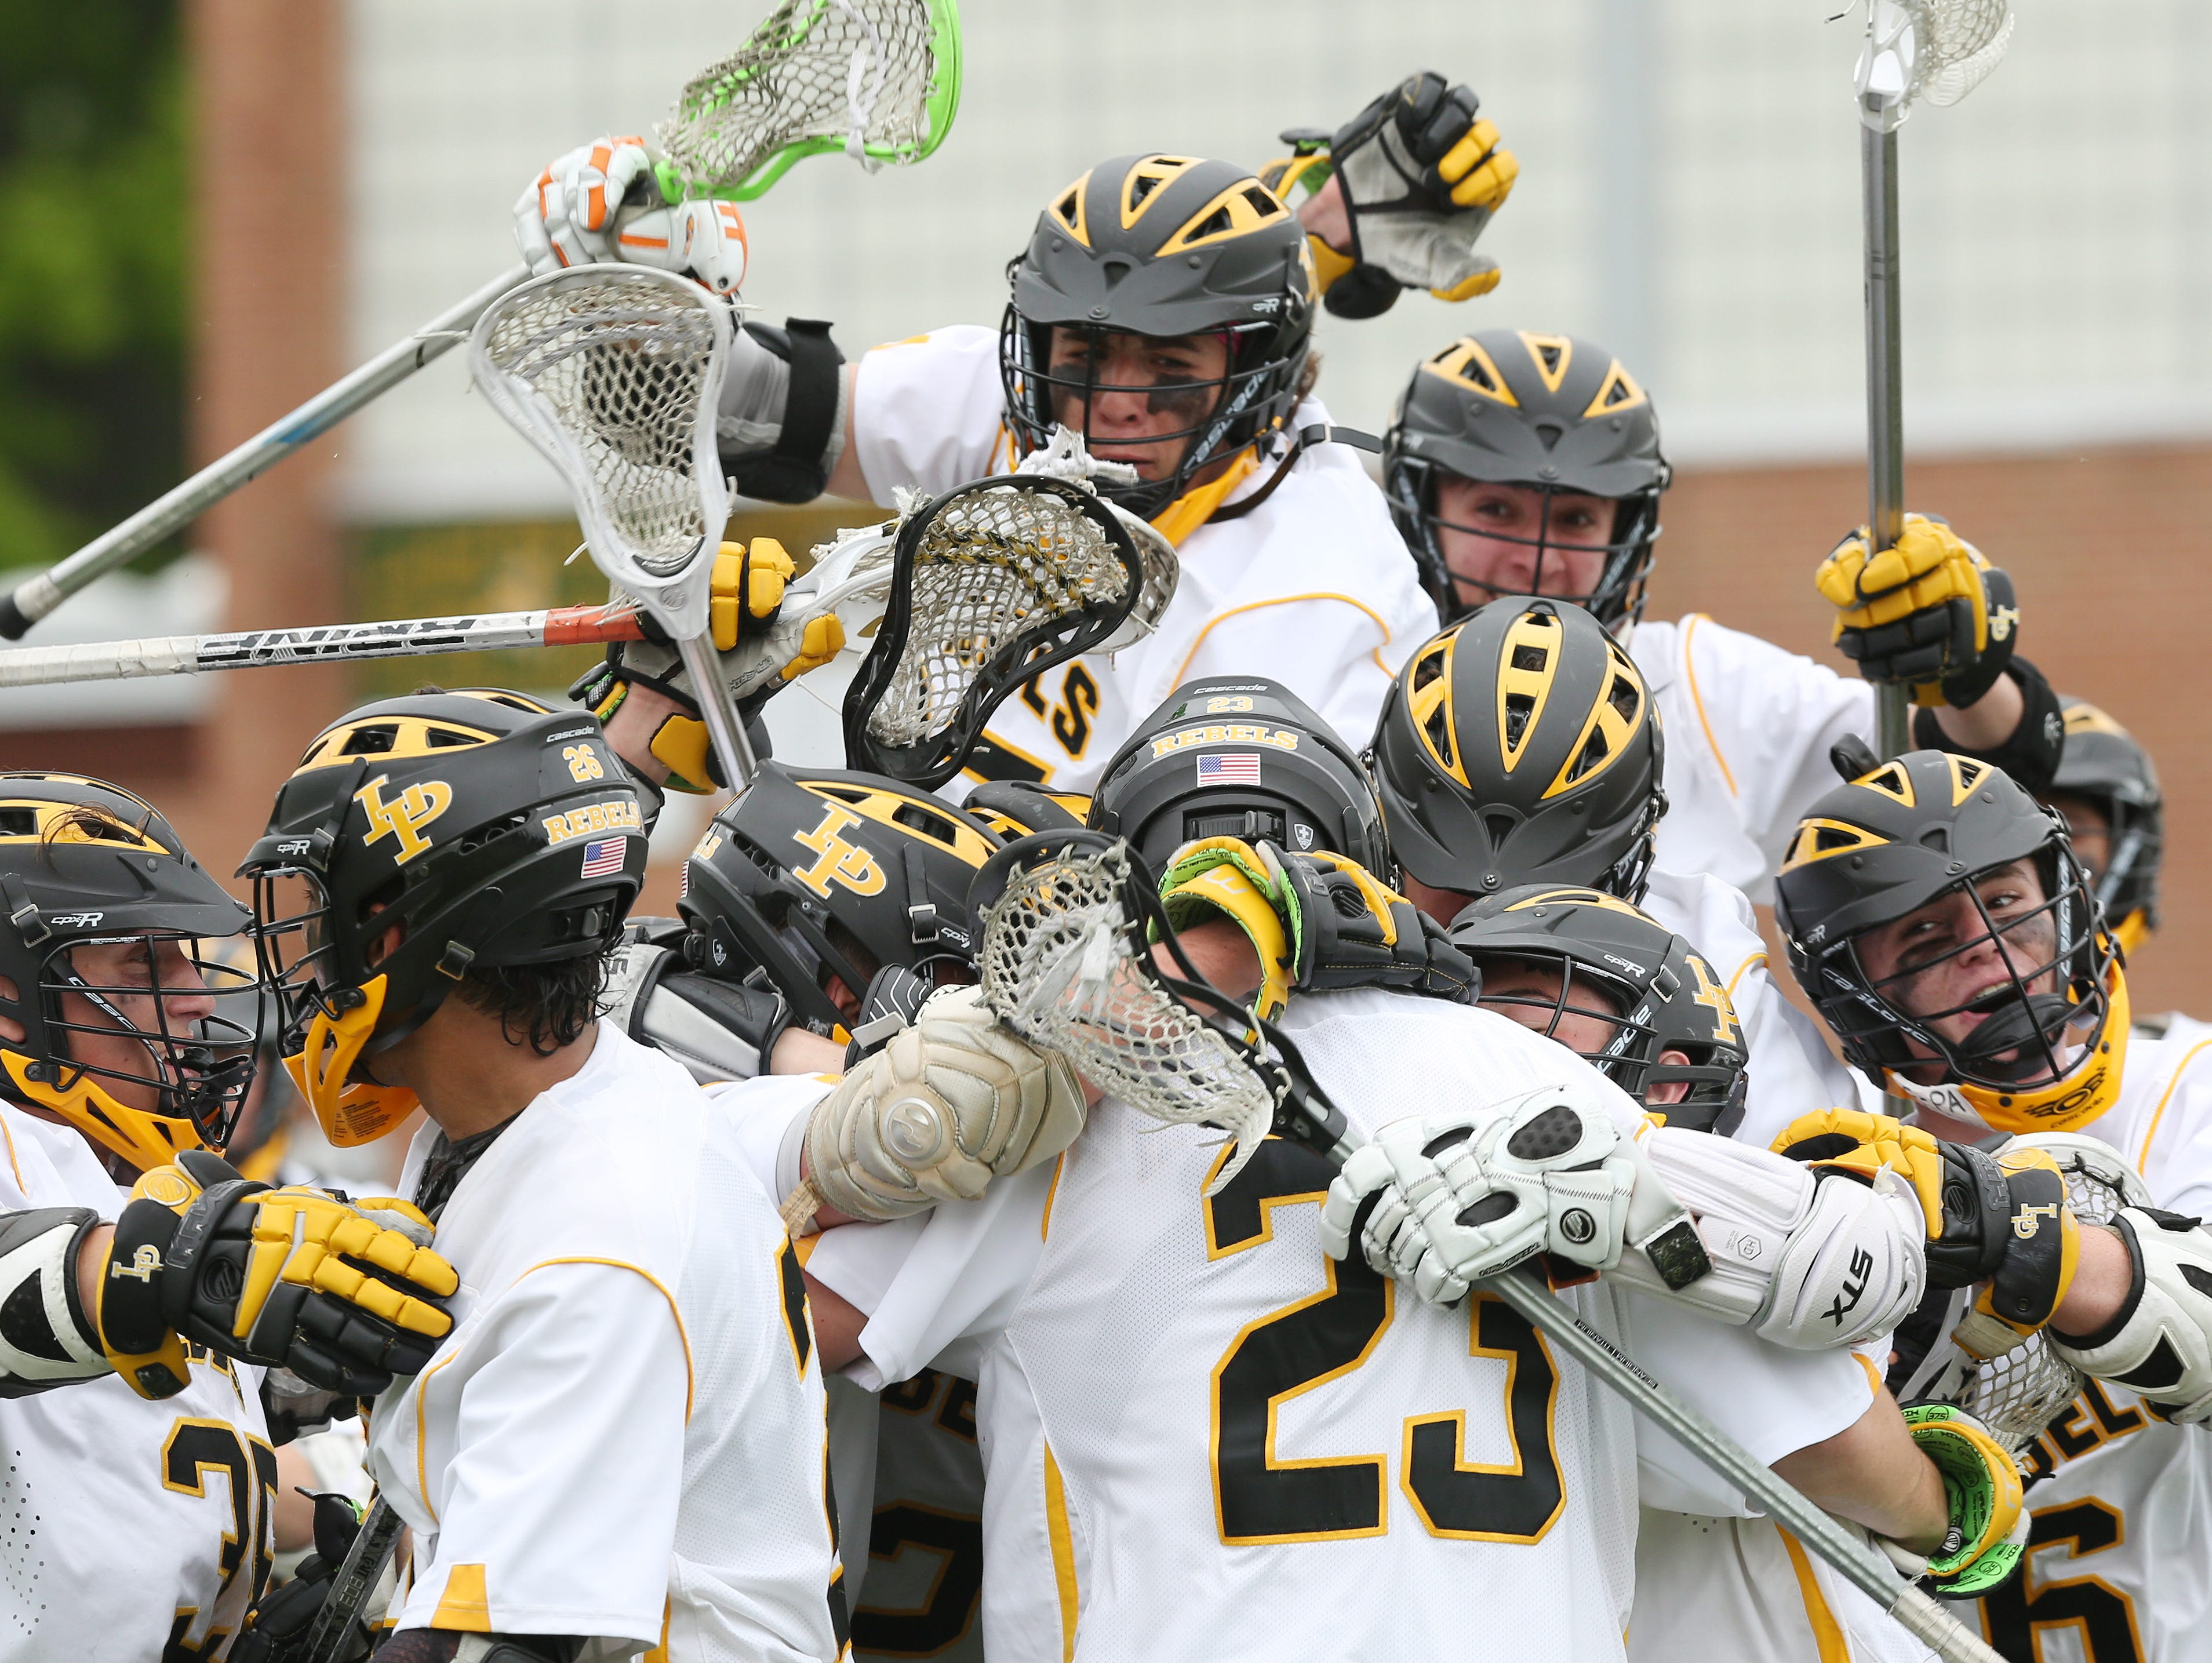 Lakeland/Panas players celebrate their 11-7 victory over Scarsdale in a Section 1 boys lacrosse playoff game at Lakeland High School in Shrub Oak May 21, 2016.